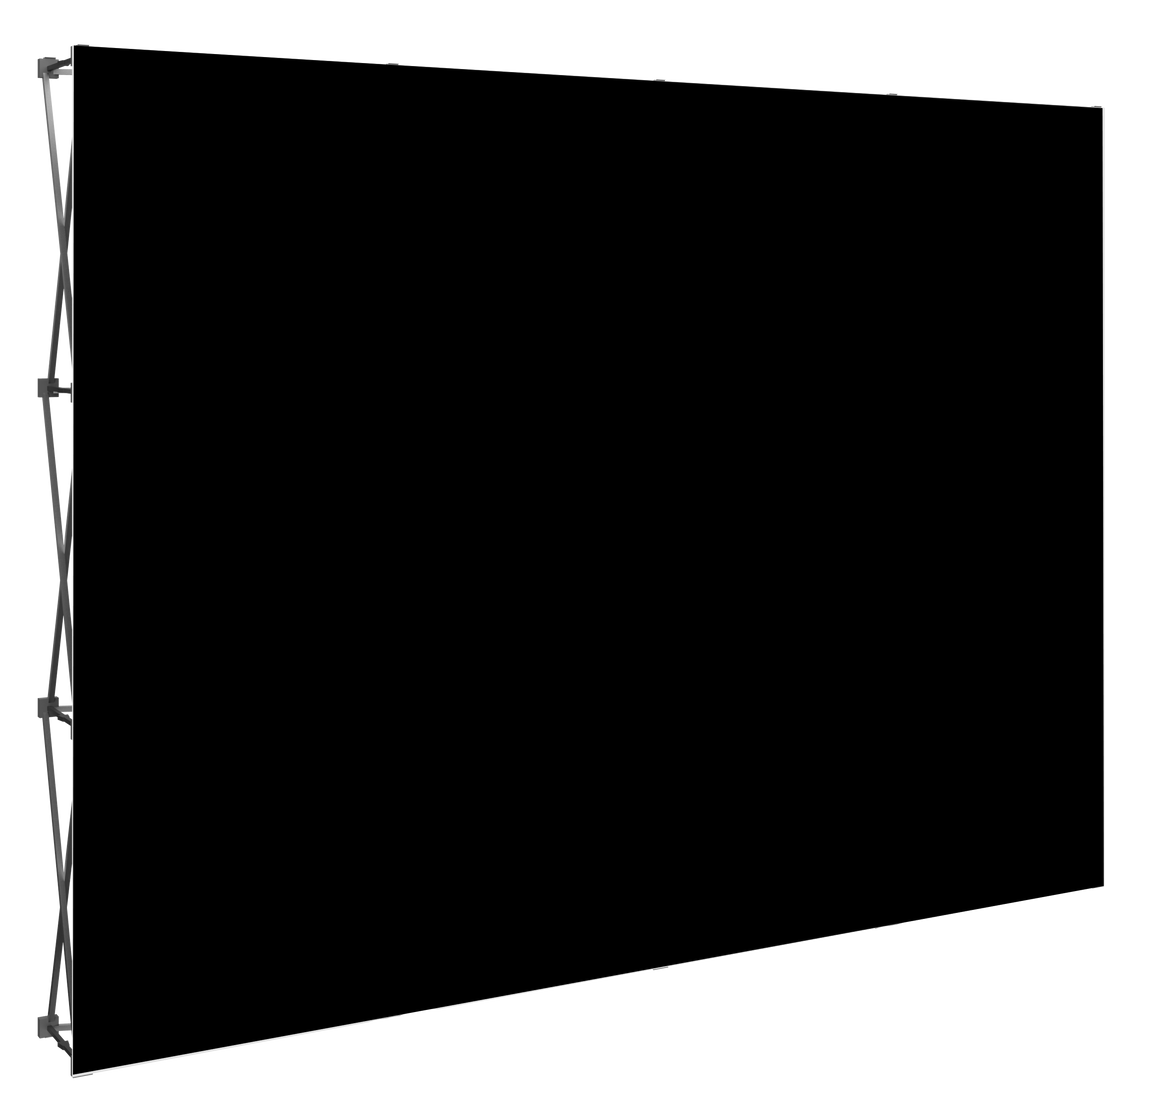 Premium Fabric Backdrop Kit - 20'x8'